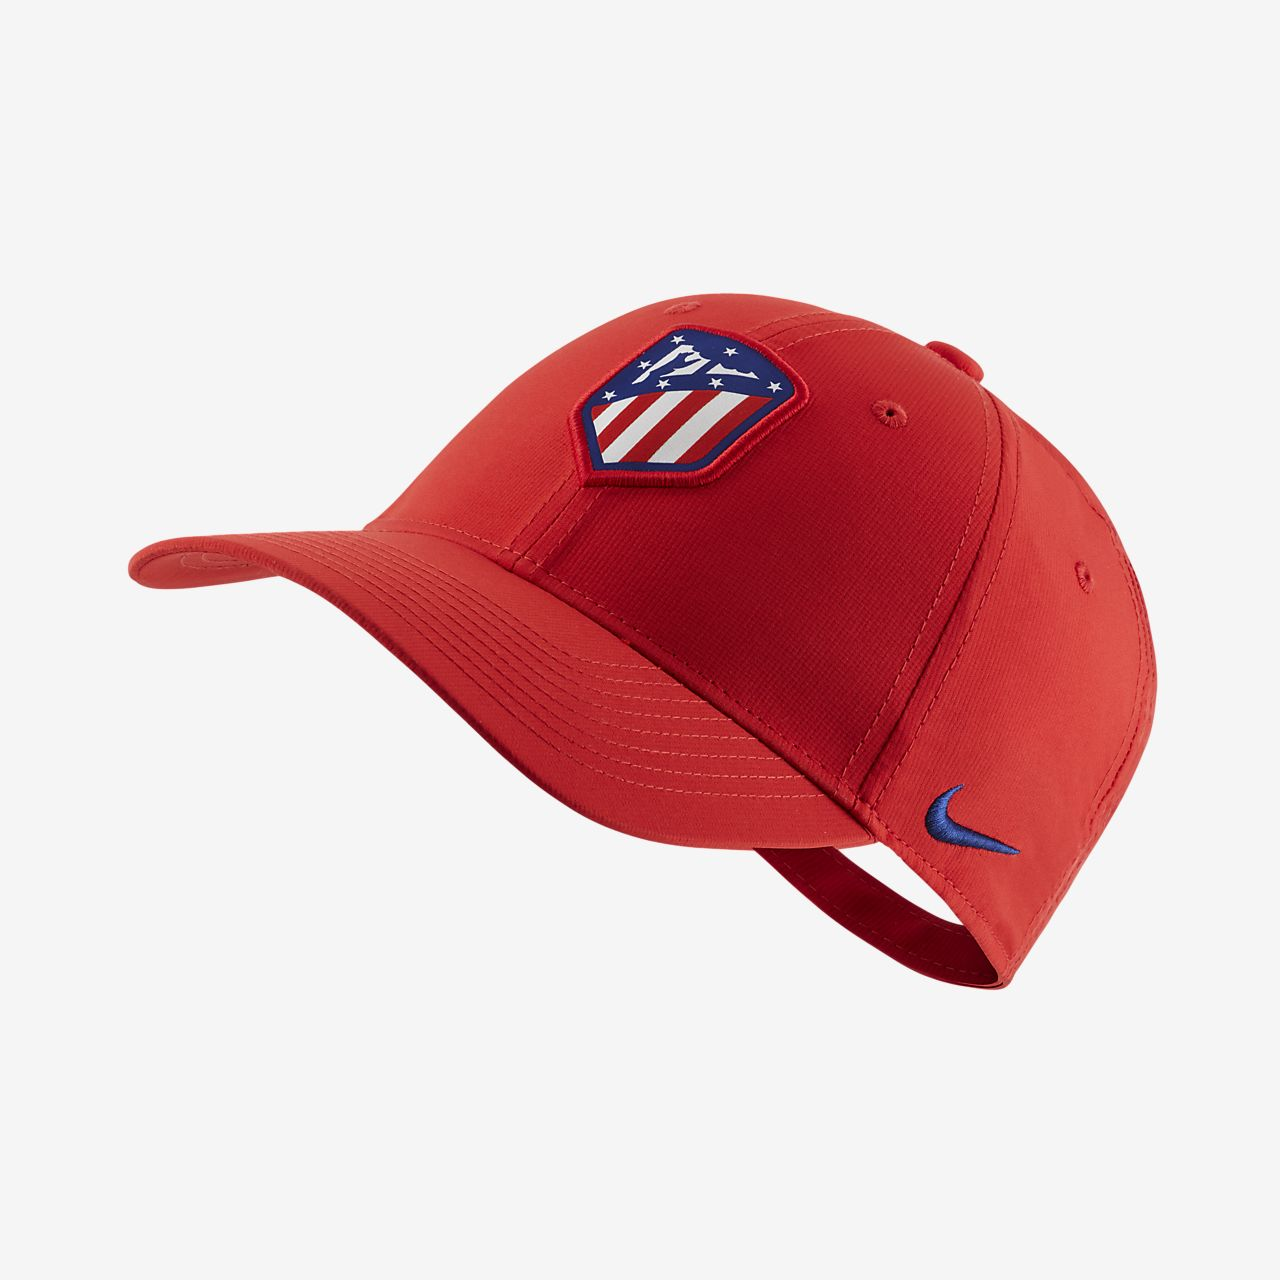 Nike Dri-FIT Atlético de Madrid Legacy91 Adjustable Hat